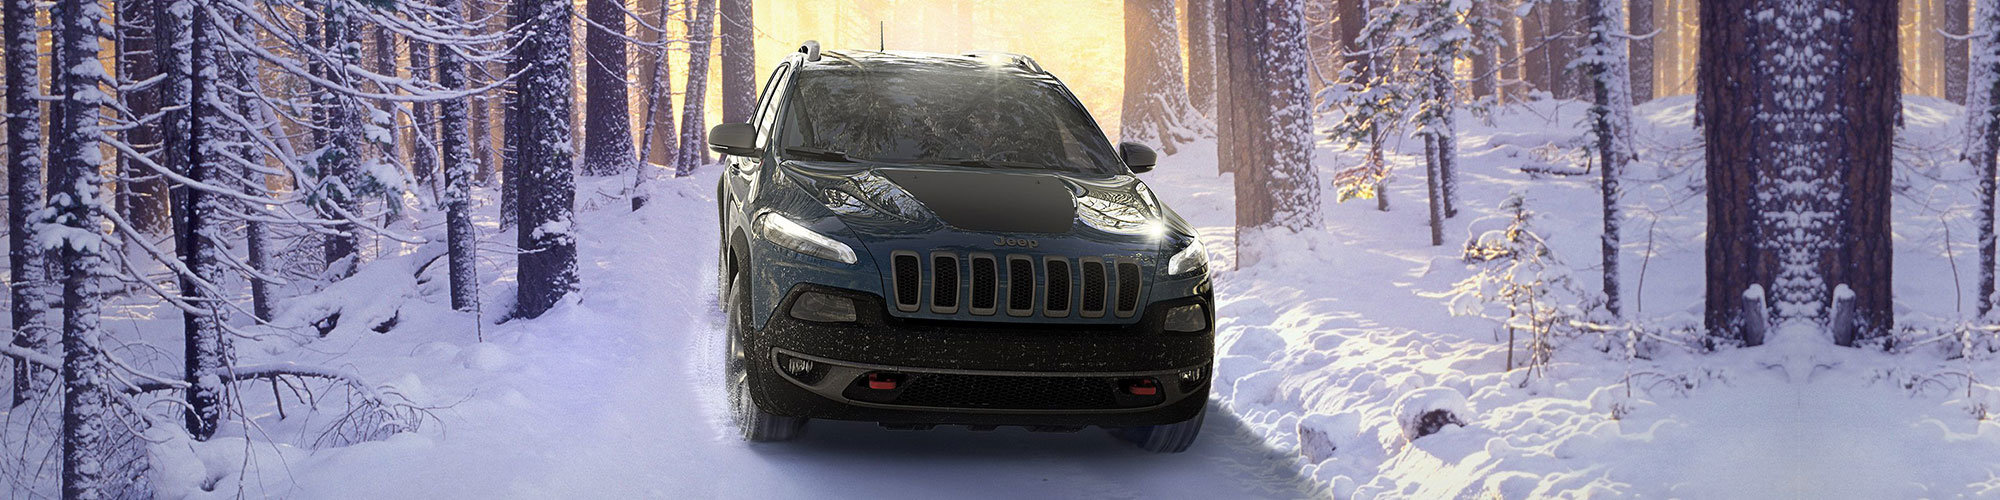 2018 jeep cherokee suv ashland ford chrysler in ashland, wi jeep xj side mirrors jeep cherokee side mirror wiring #40